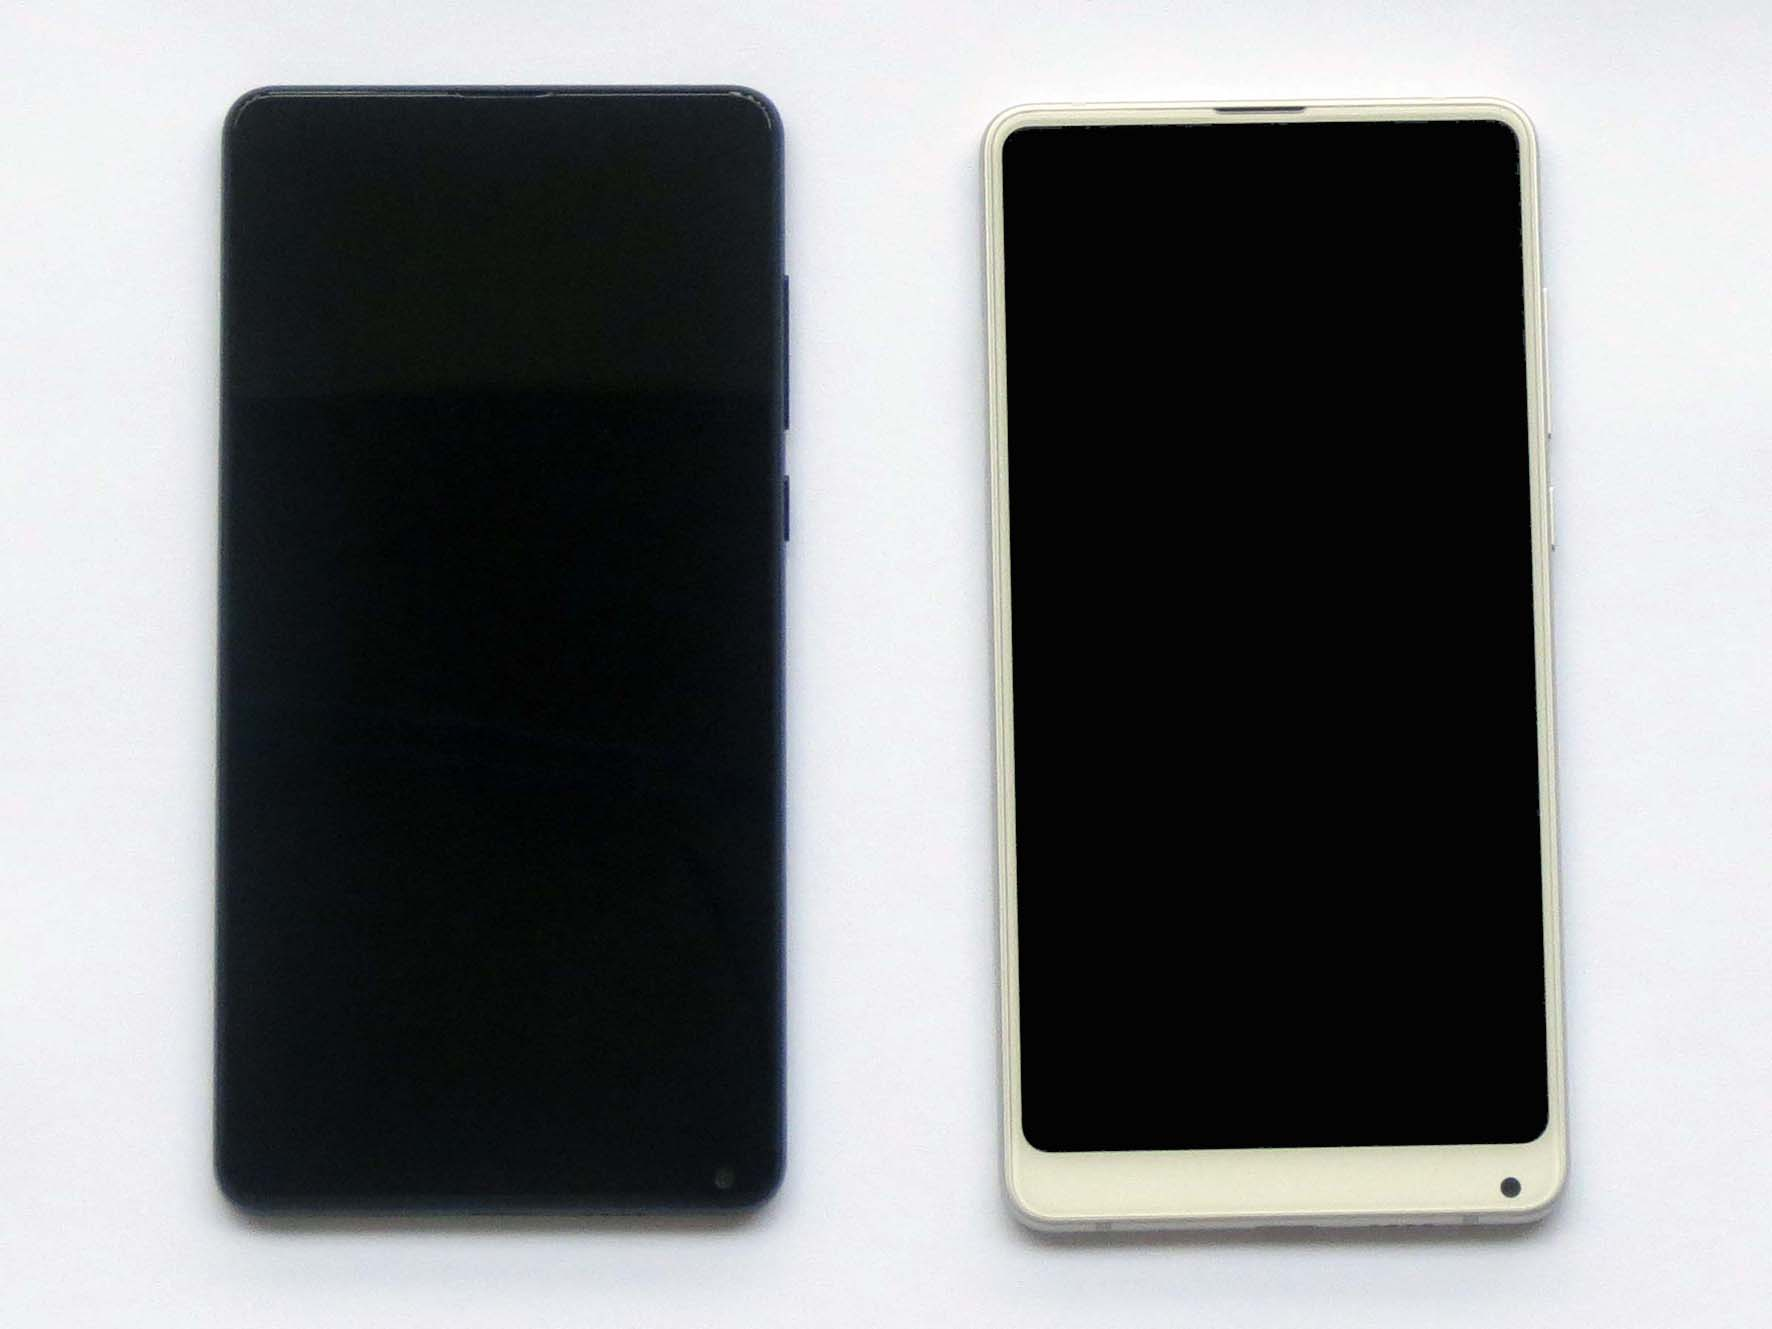 Original Complete screen with front housing for xiaomi MIX 2s-Black & White